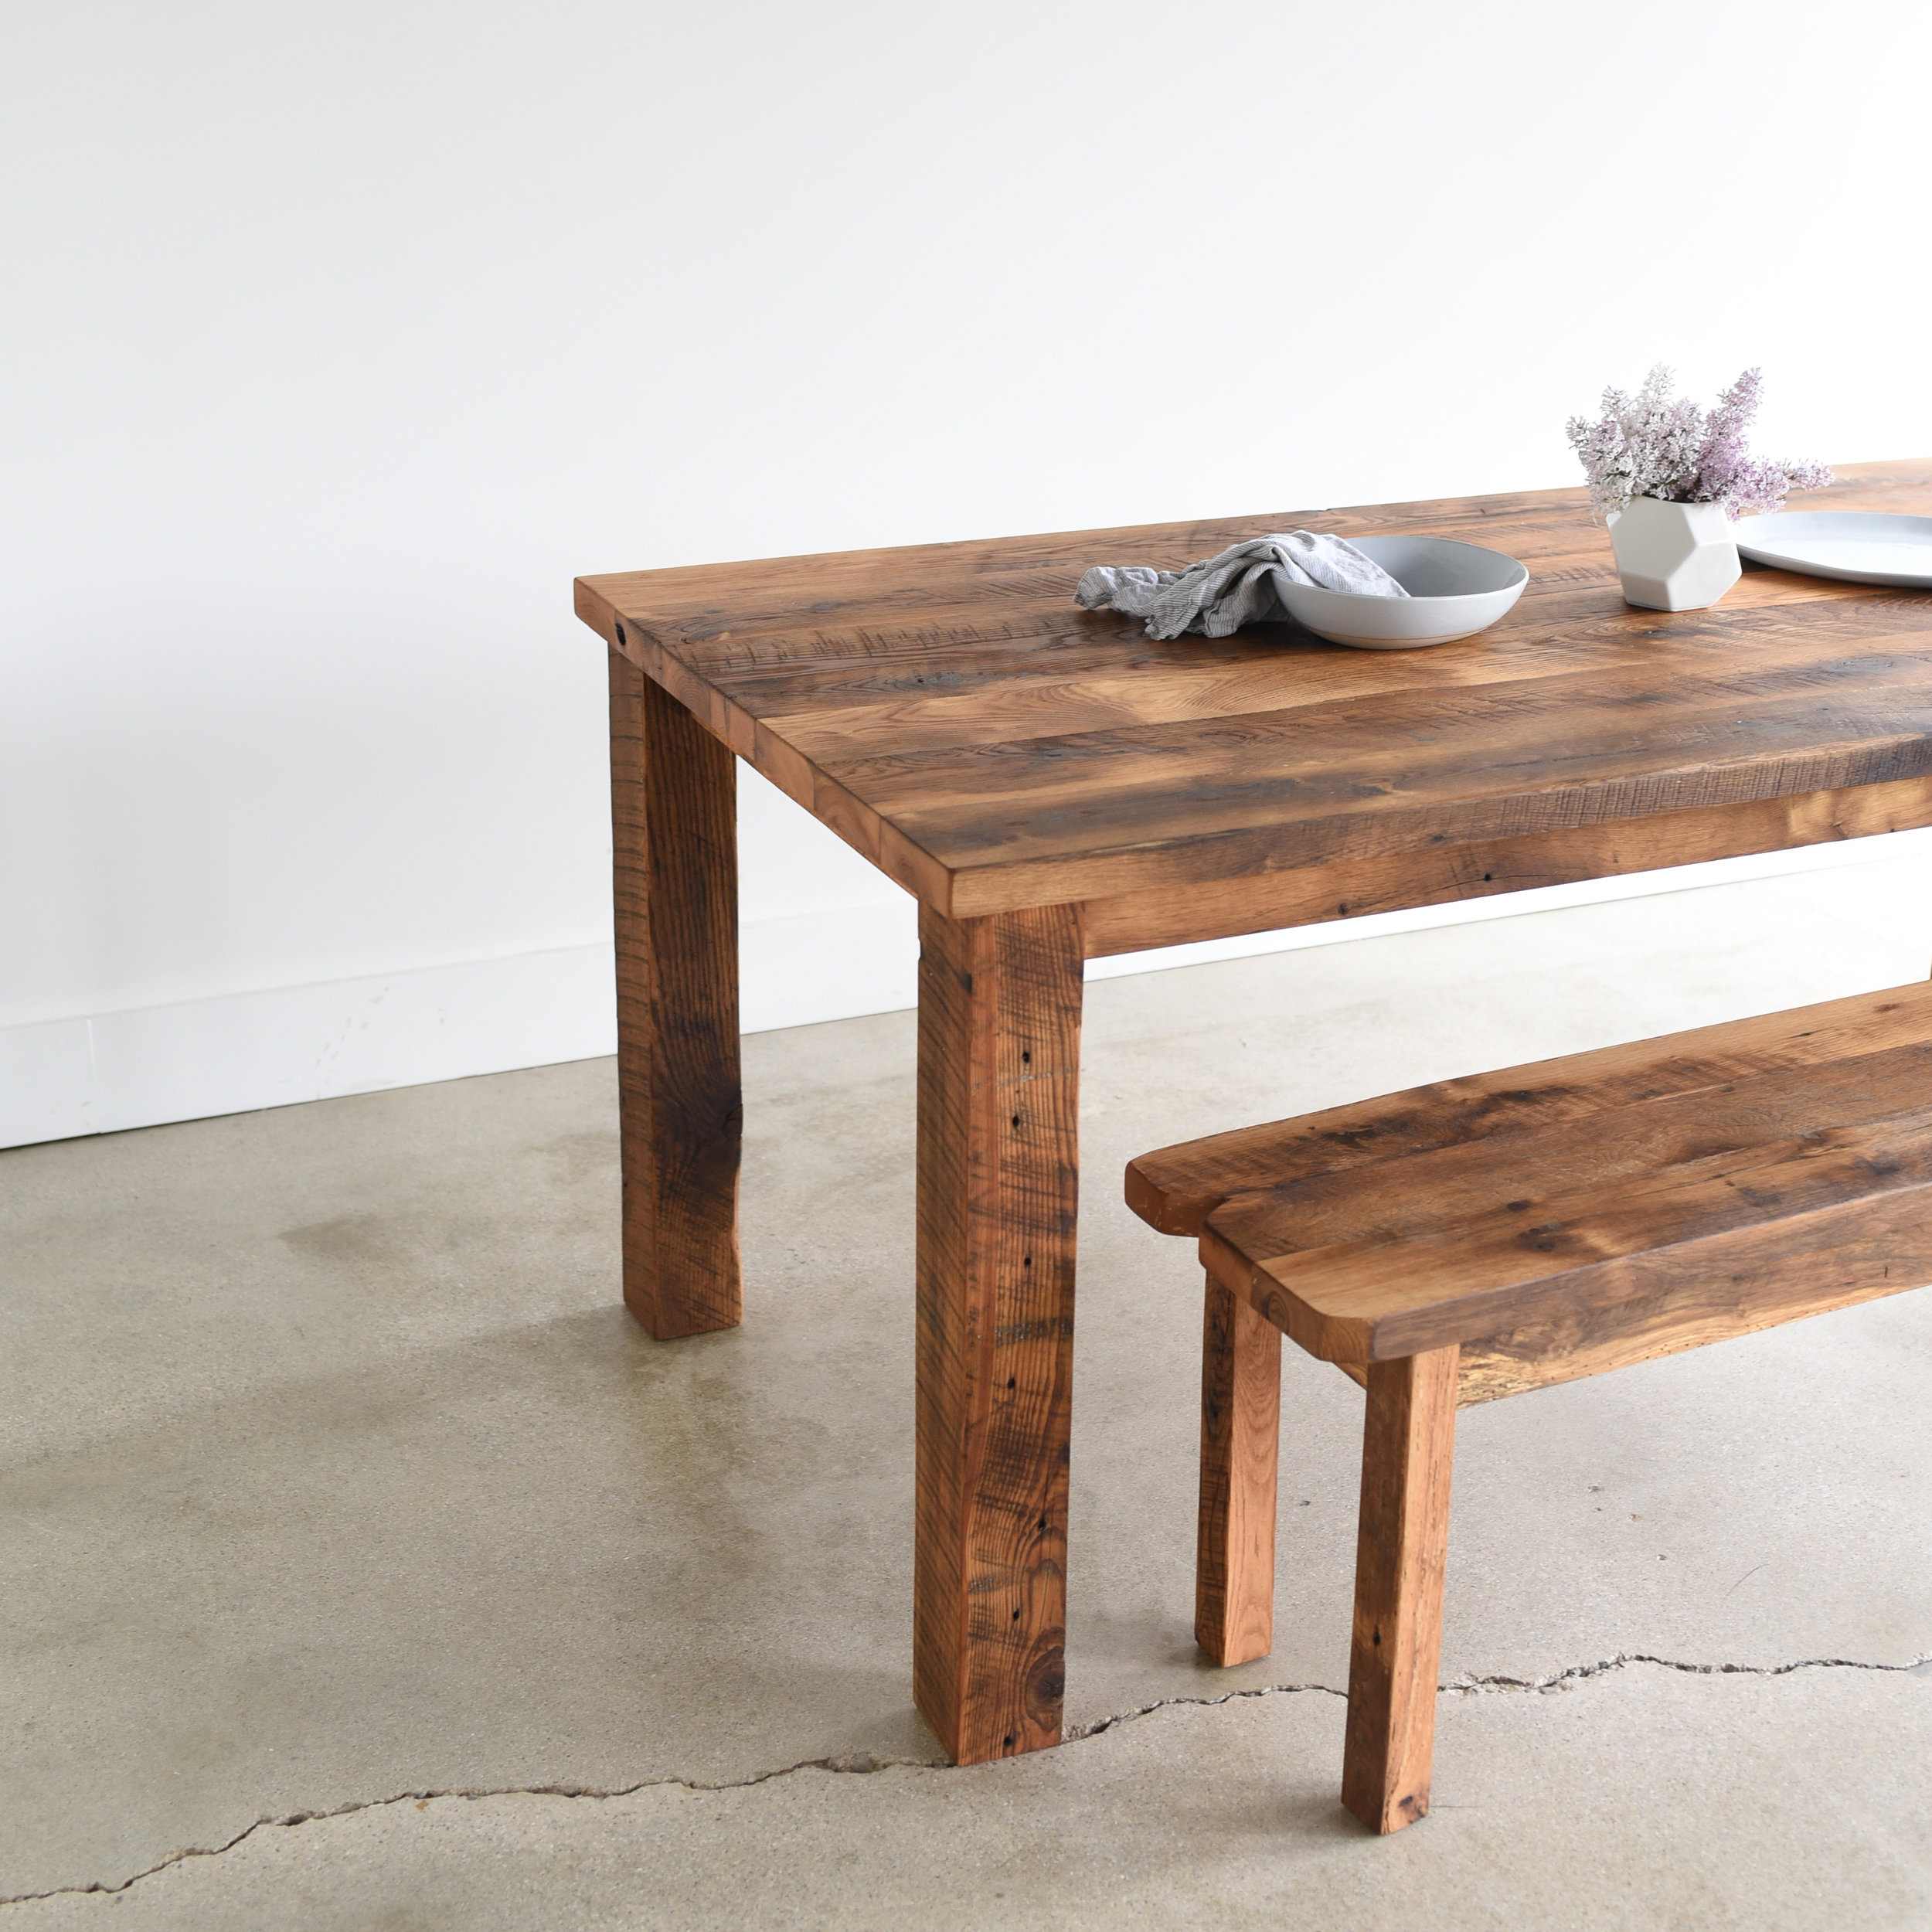 Reclaimed Wood Plank Dining Table Farmhouse What We Make